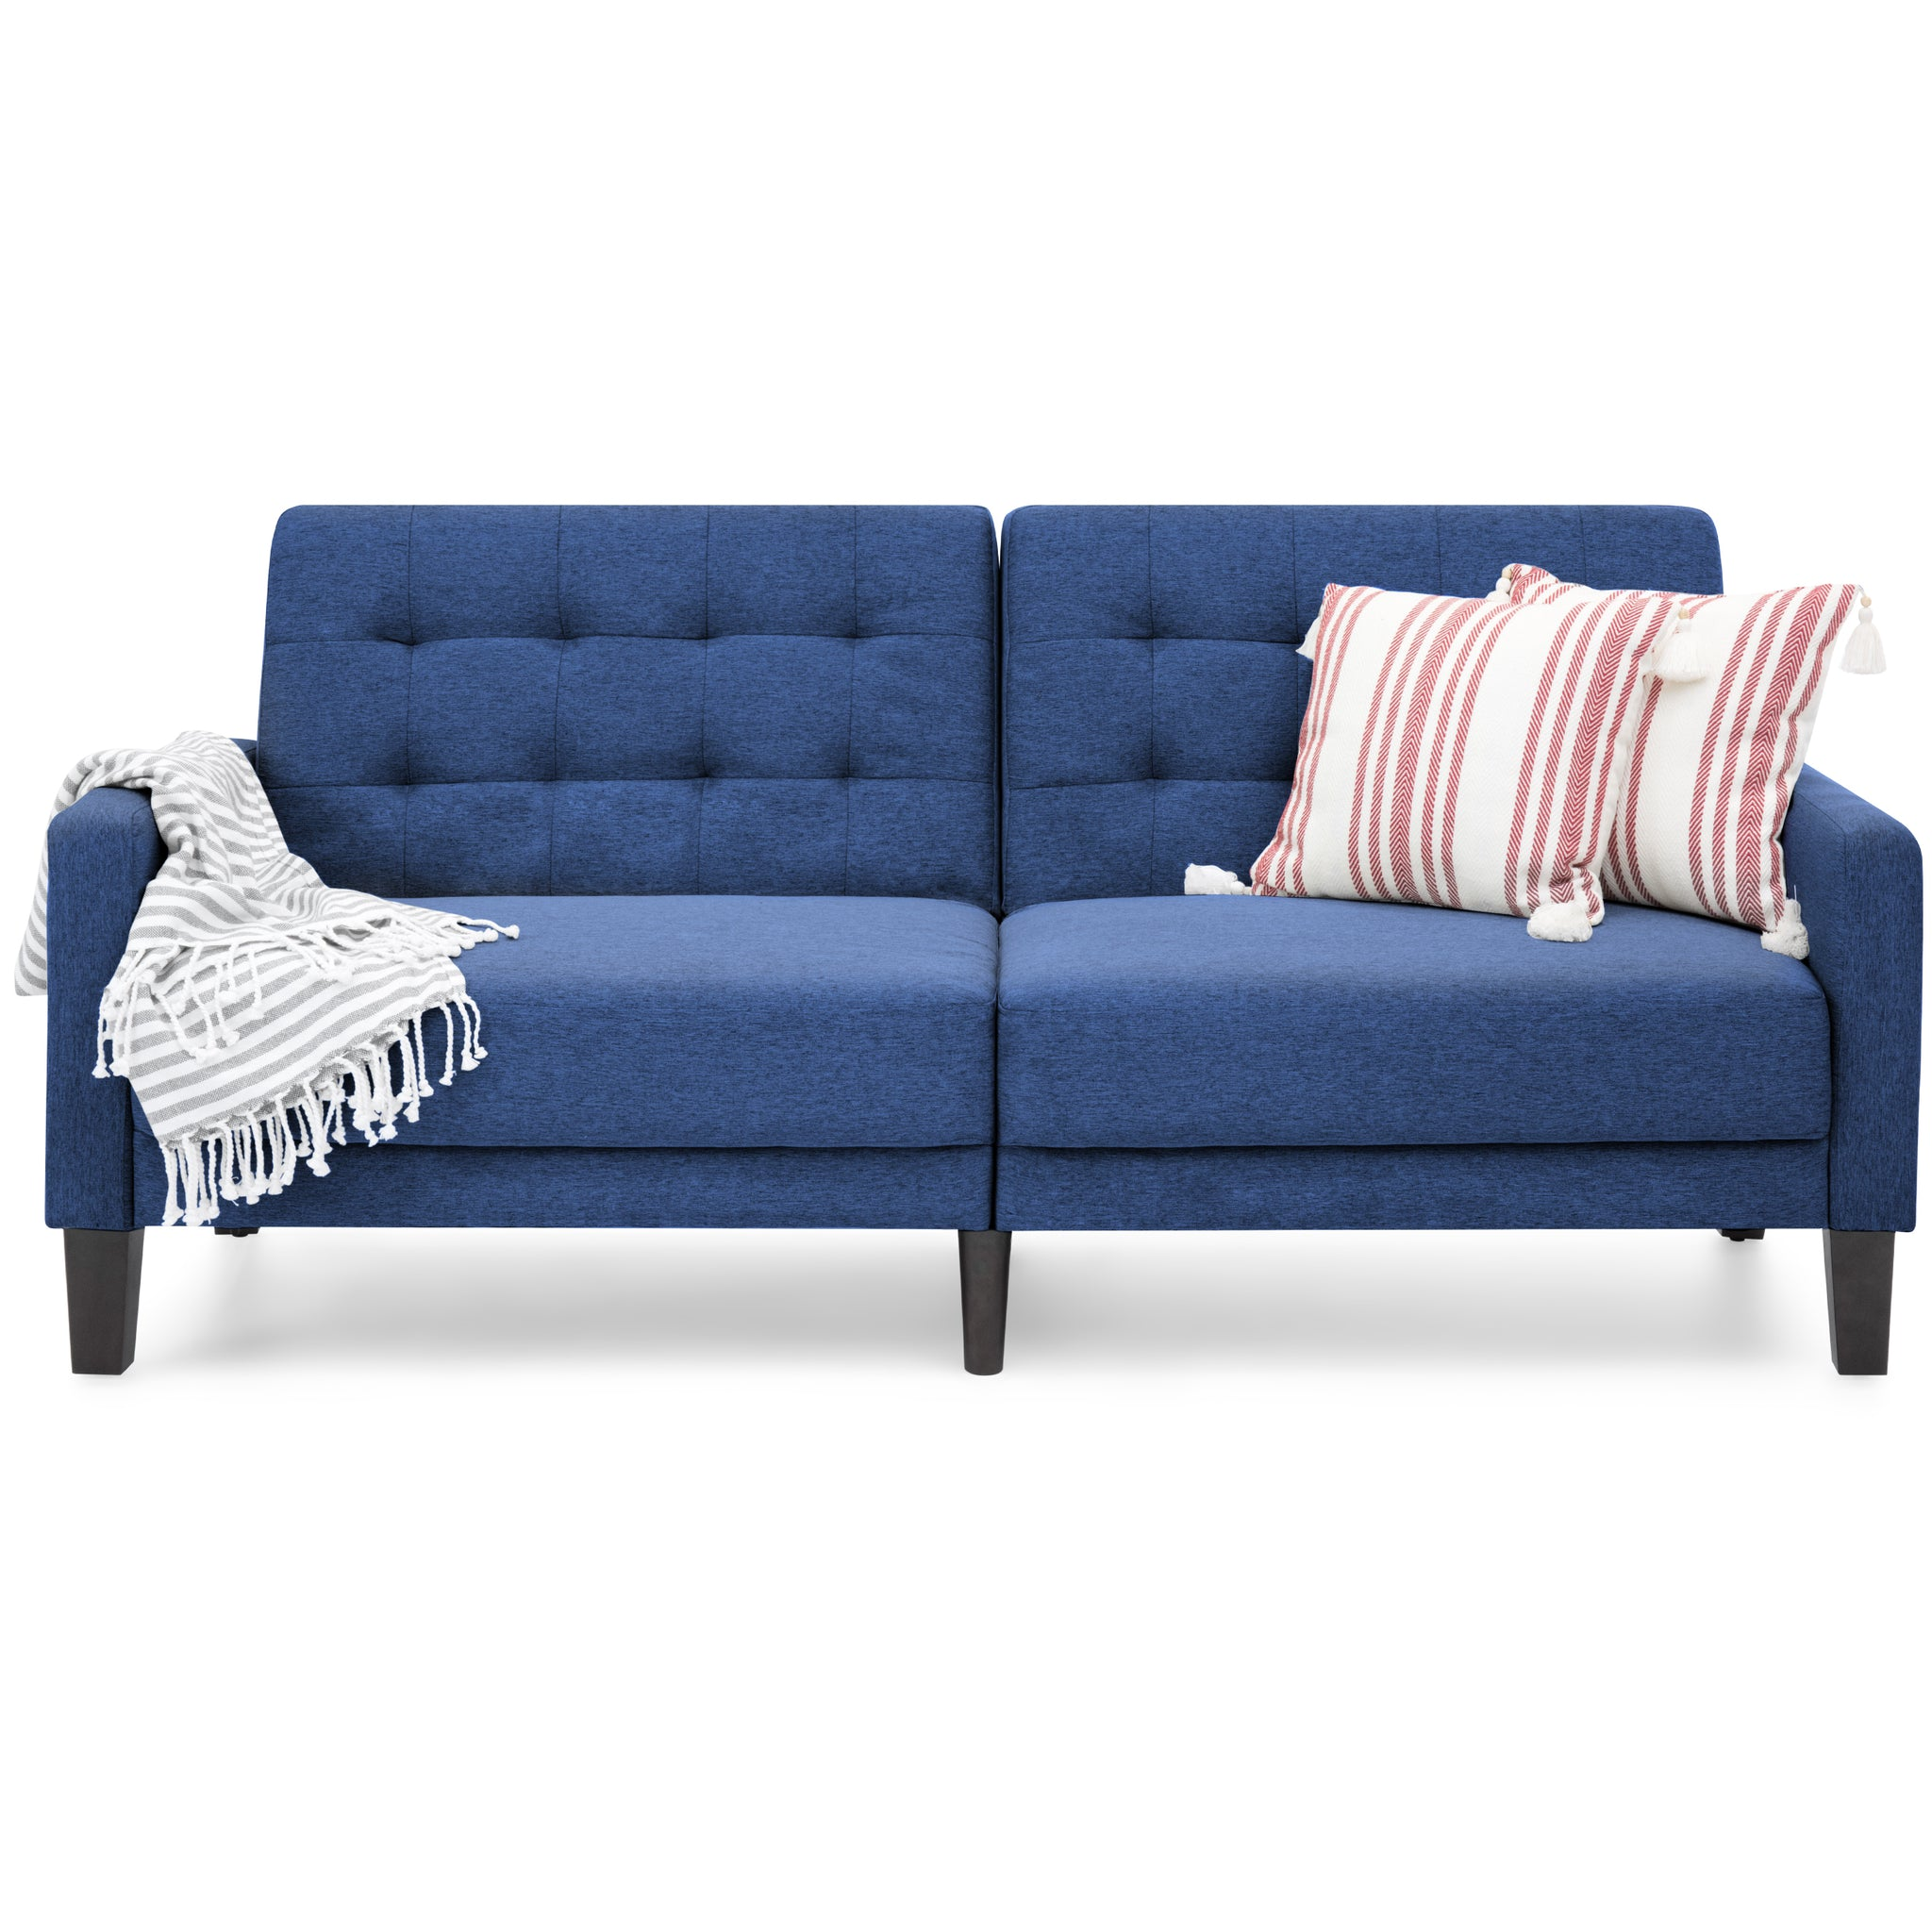 Convertible Linen Upholstered Split Back Futon Navy – Best